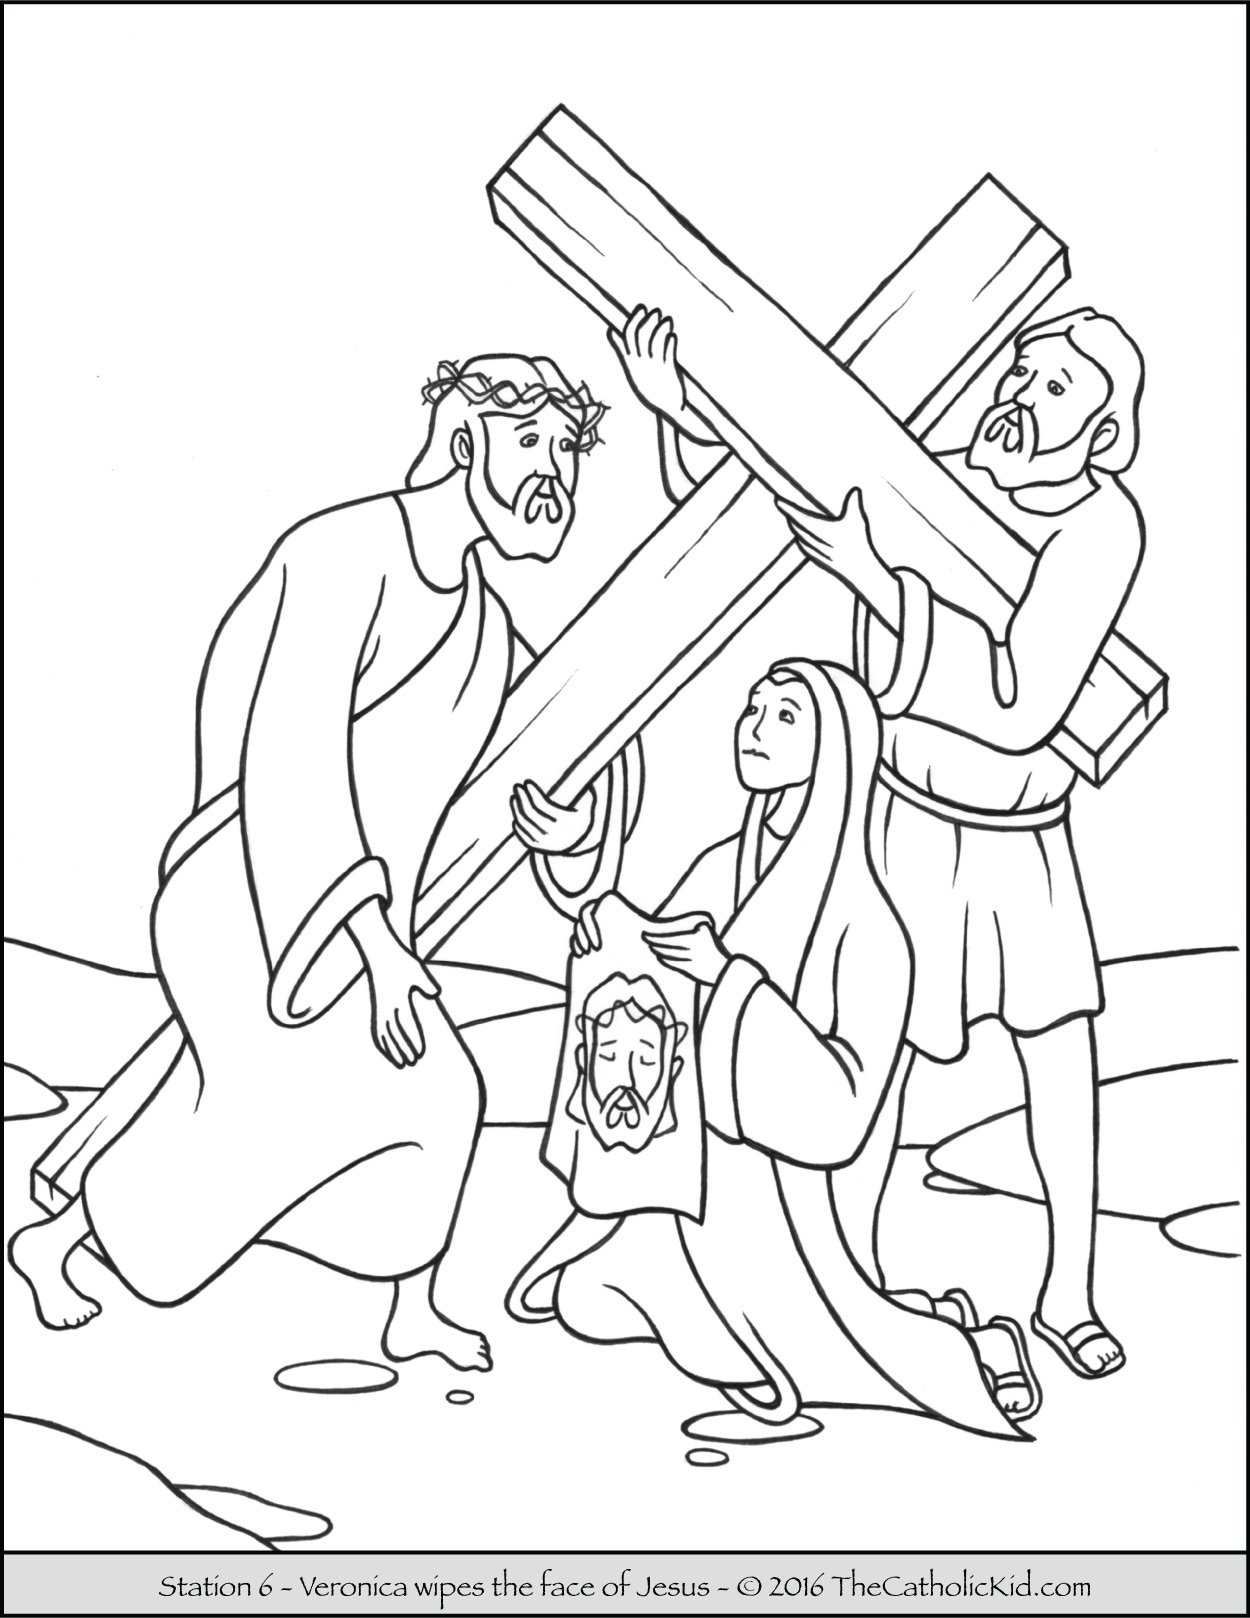 Stations Of The Cross Coloring Pages Amazing Stations Of The Cross Coloring Pages  The Catholic Kid Design Inspiration